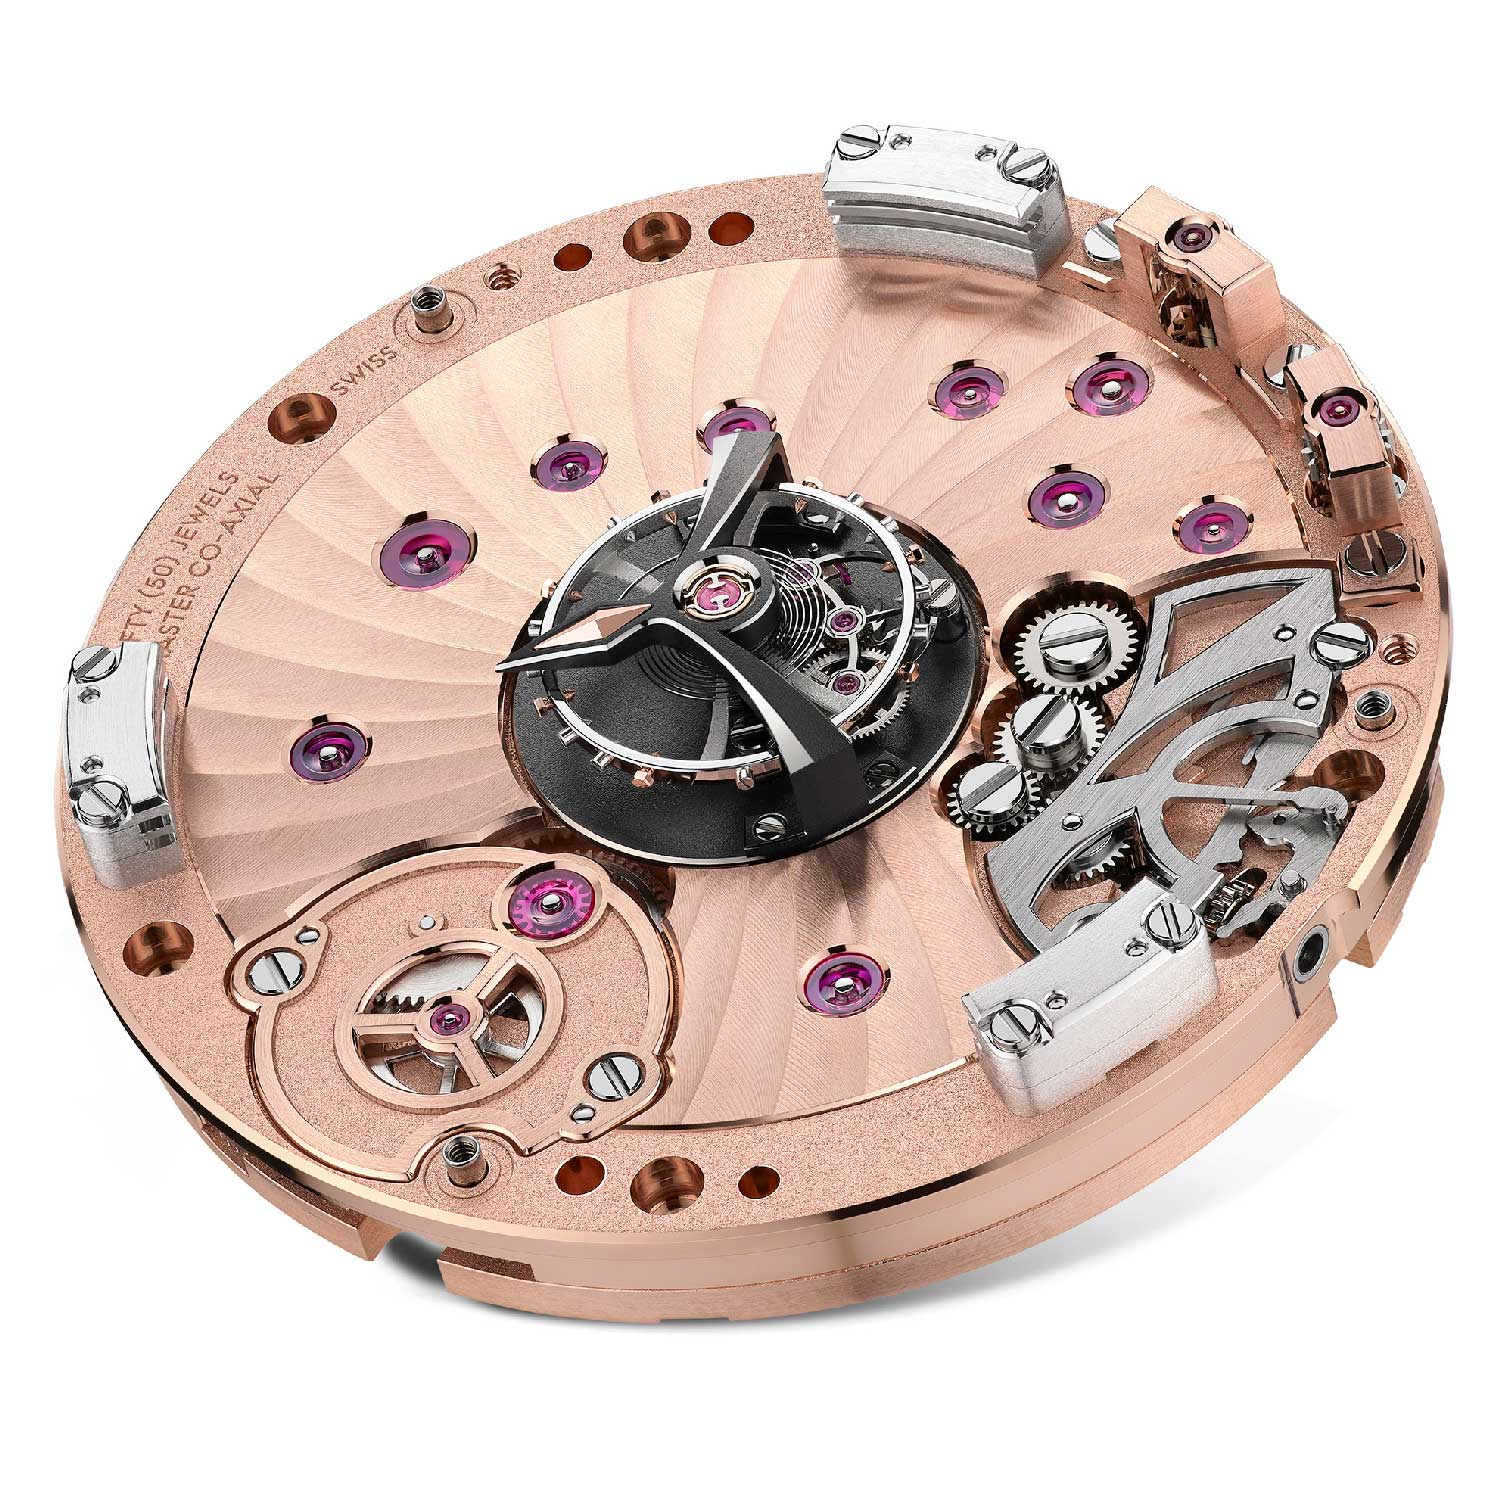 The dial-side of the Calibre 2640 shows the driving gears for the hands on the periphery of the movement.